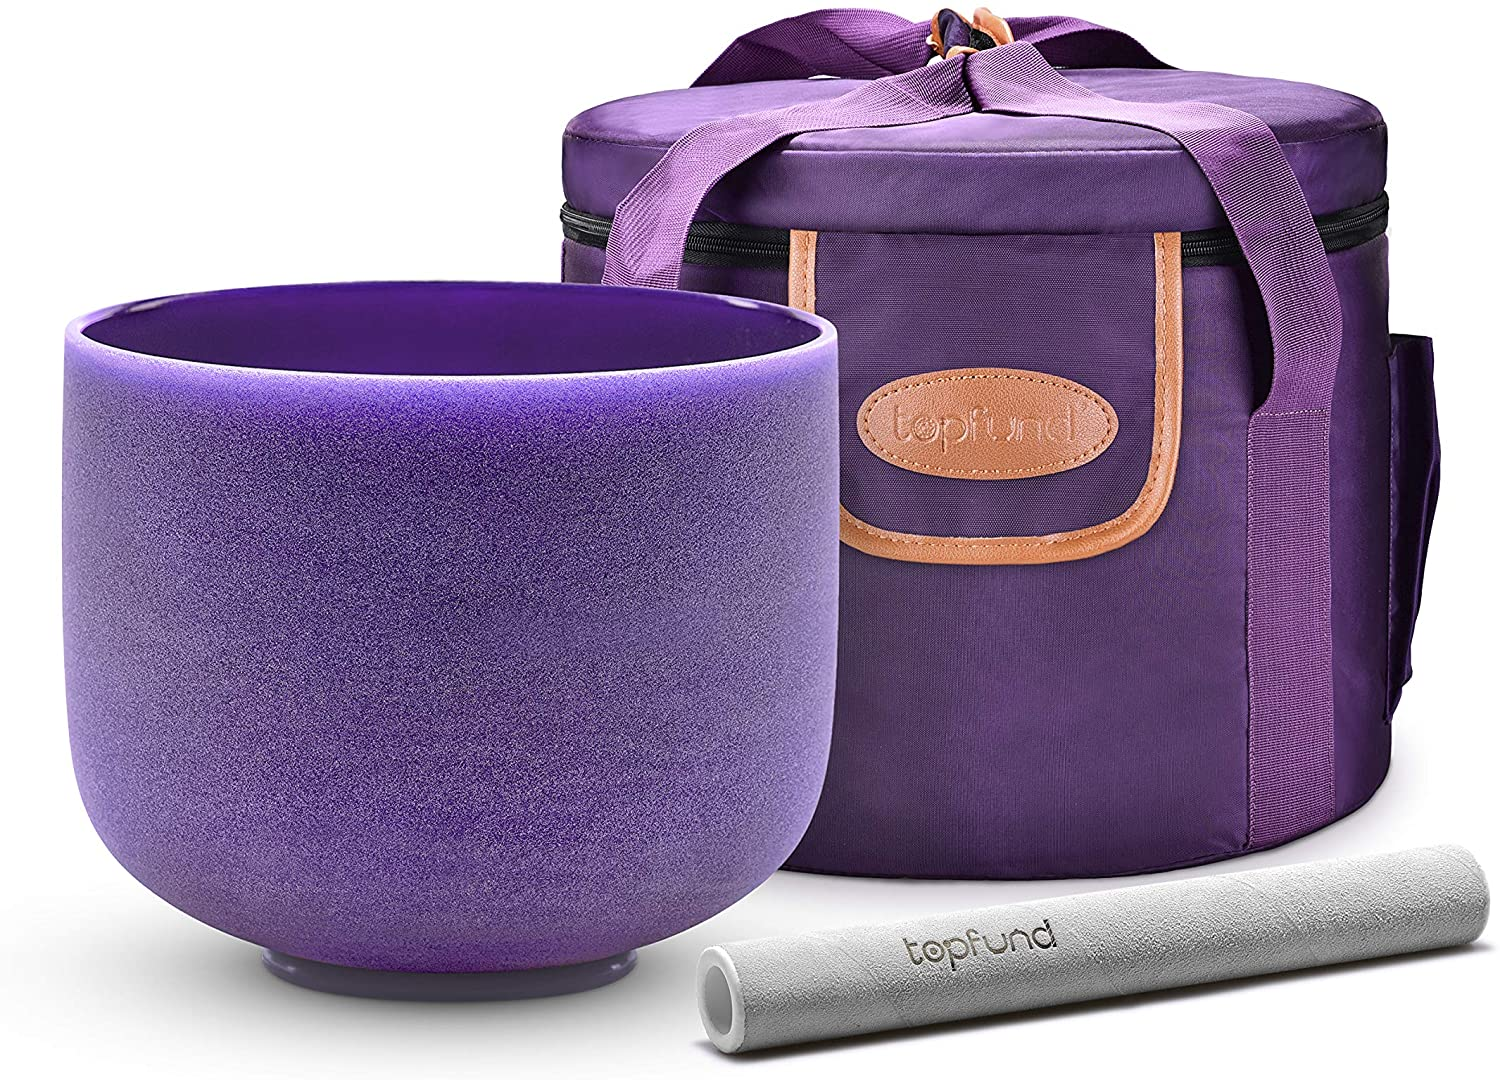 TOPFUND Violet B Note Crystal Singing Bowl Crown Chakra 8 inch with Heavy Duty Carrying Case and Suede Striker